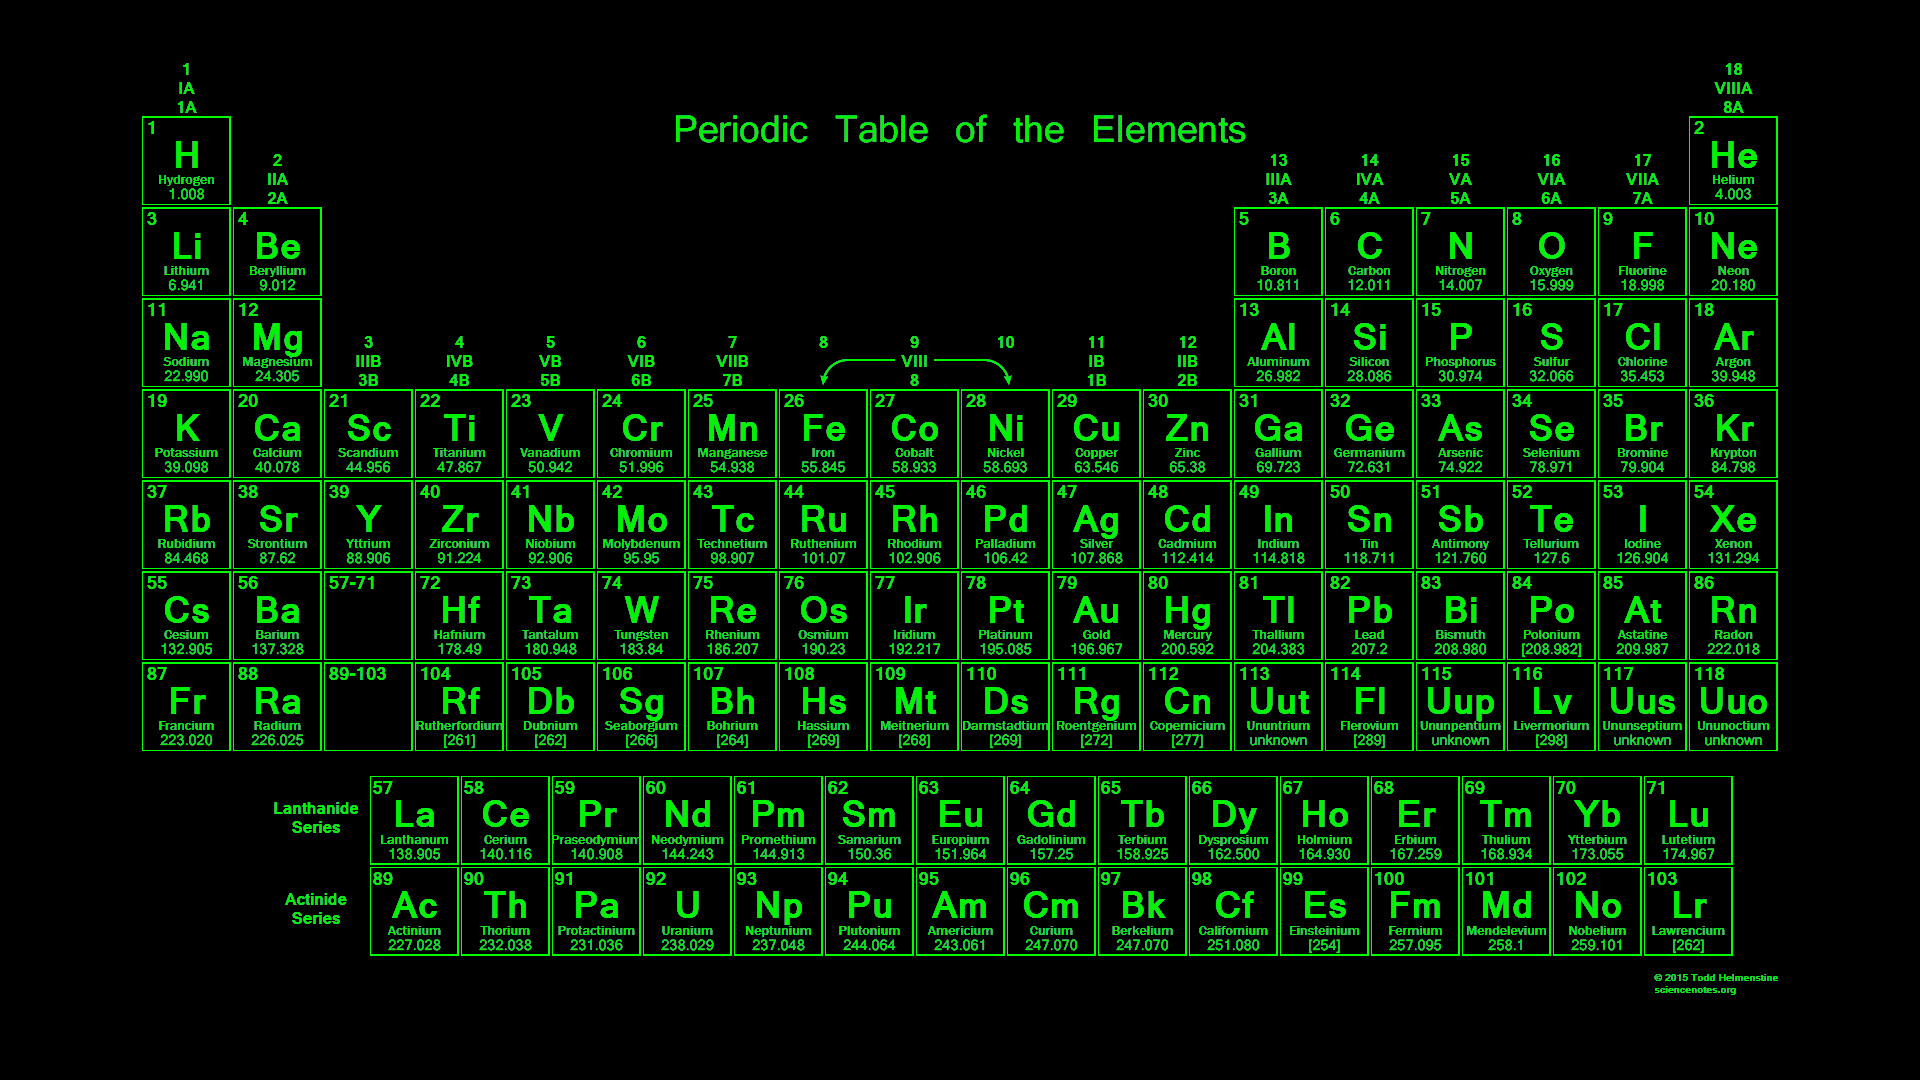 1920x1080 Periodic Table Wallpaper - Glowing Neon Green Text